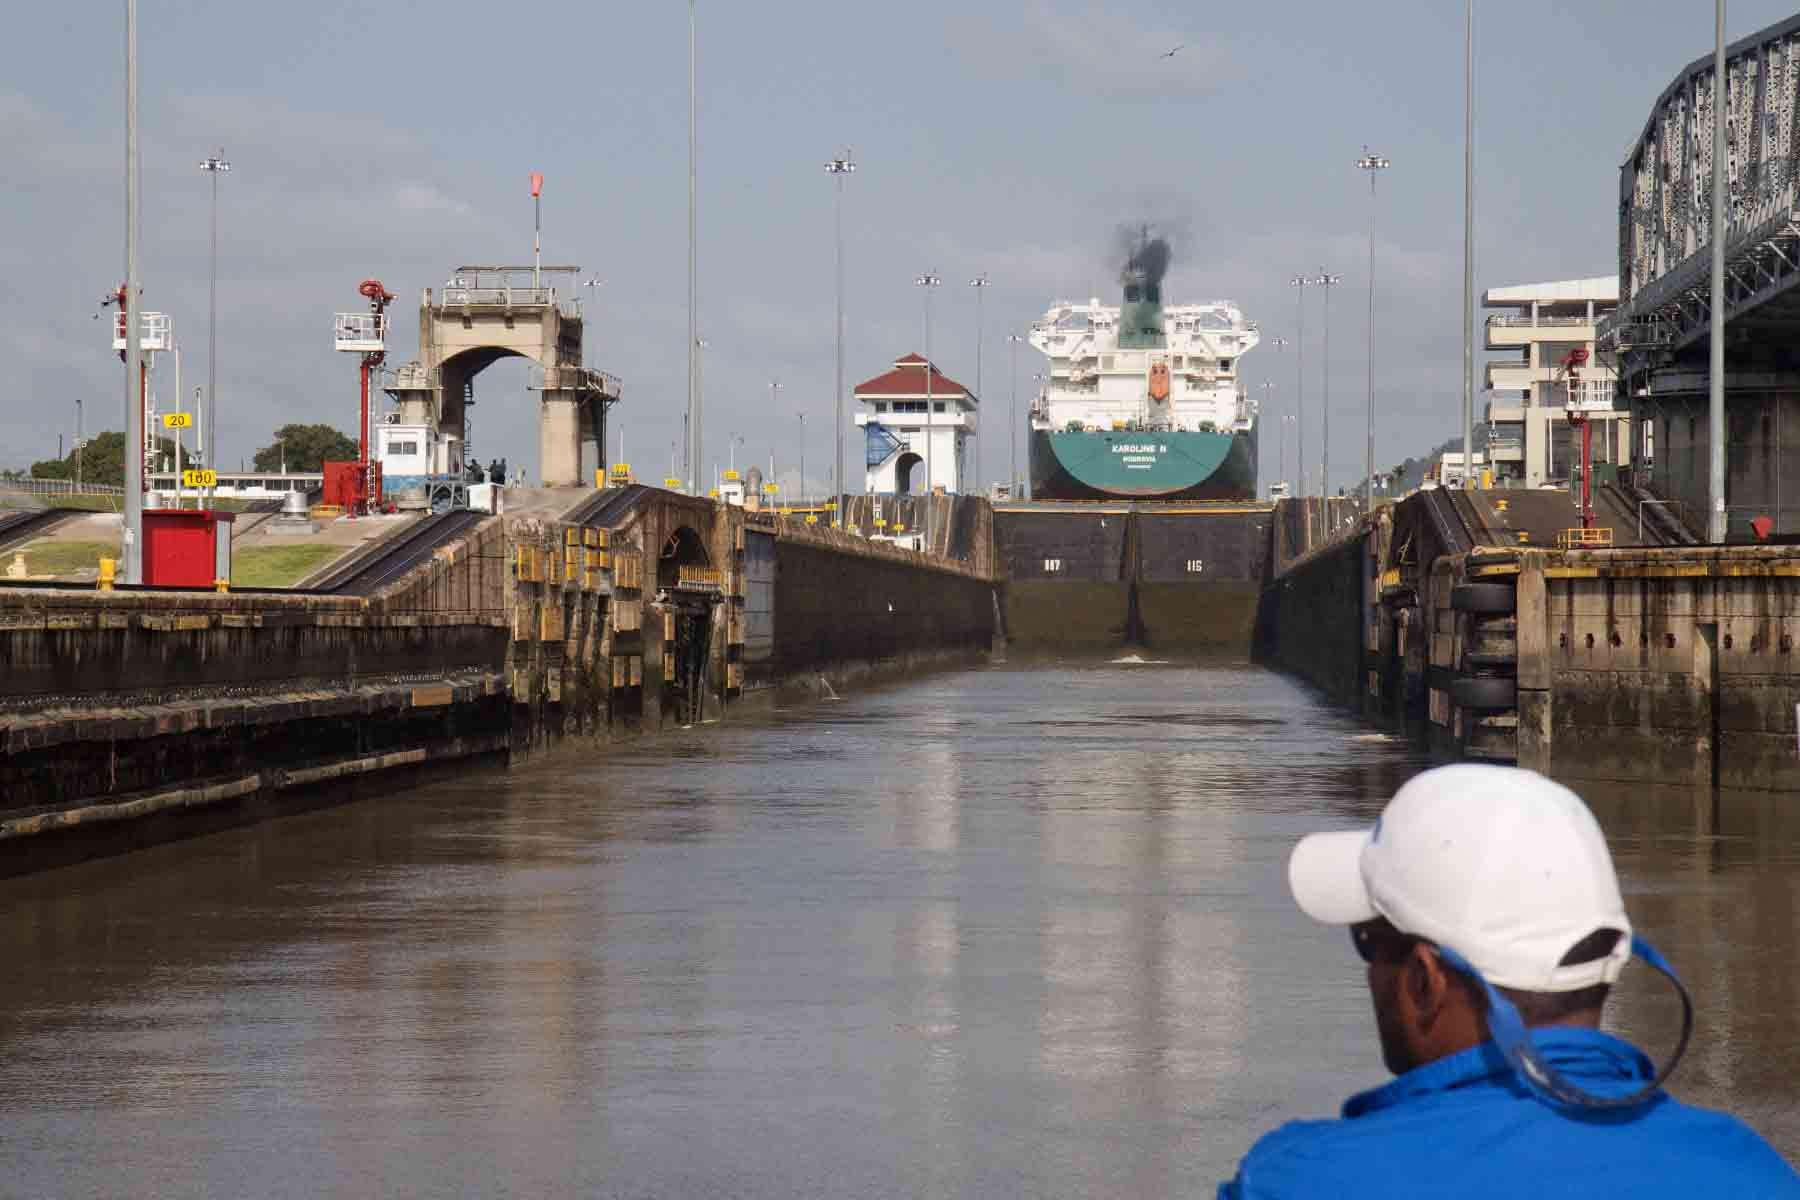 Entering the first of Miraflores Locks, Panama Canal